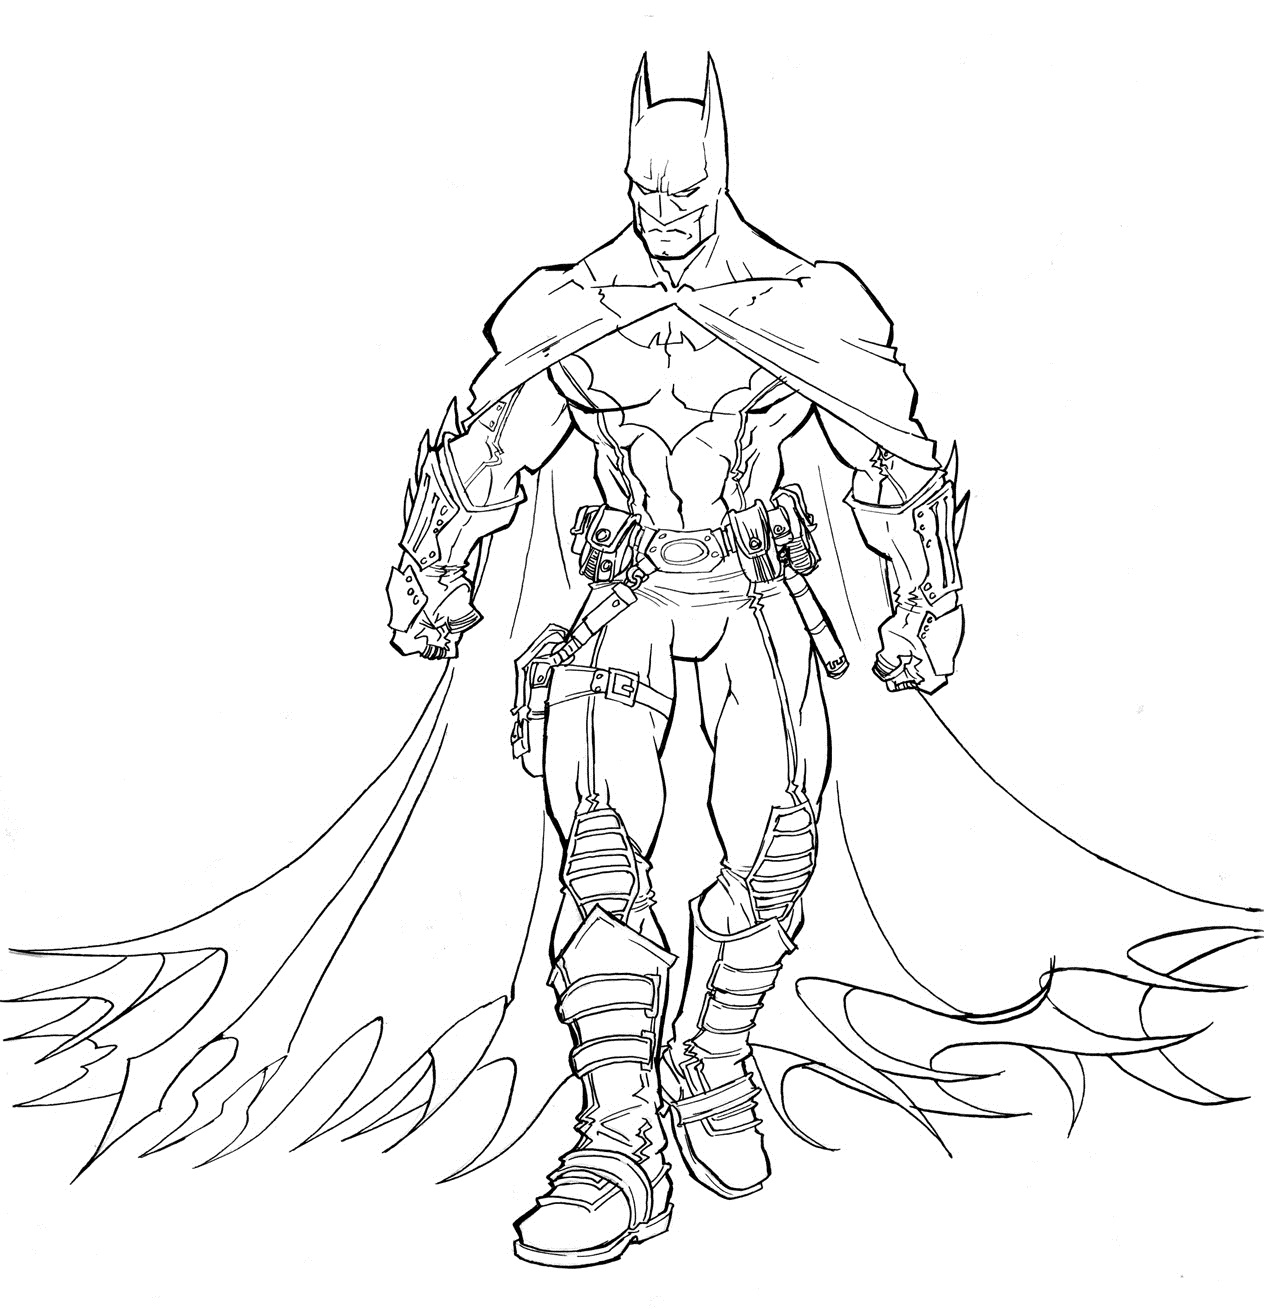 batman coloring pages Old Batman Coloring Book Pages  Coloring Book Pages Batman